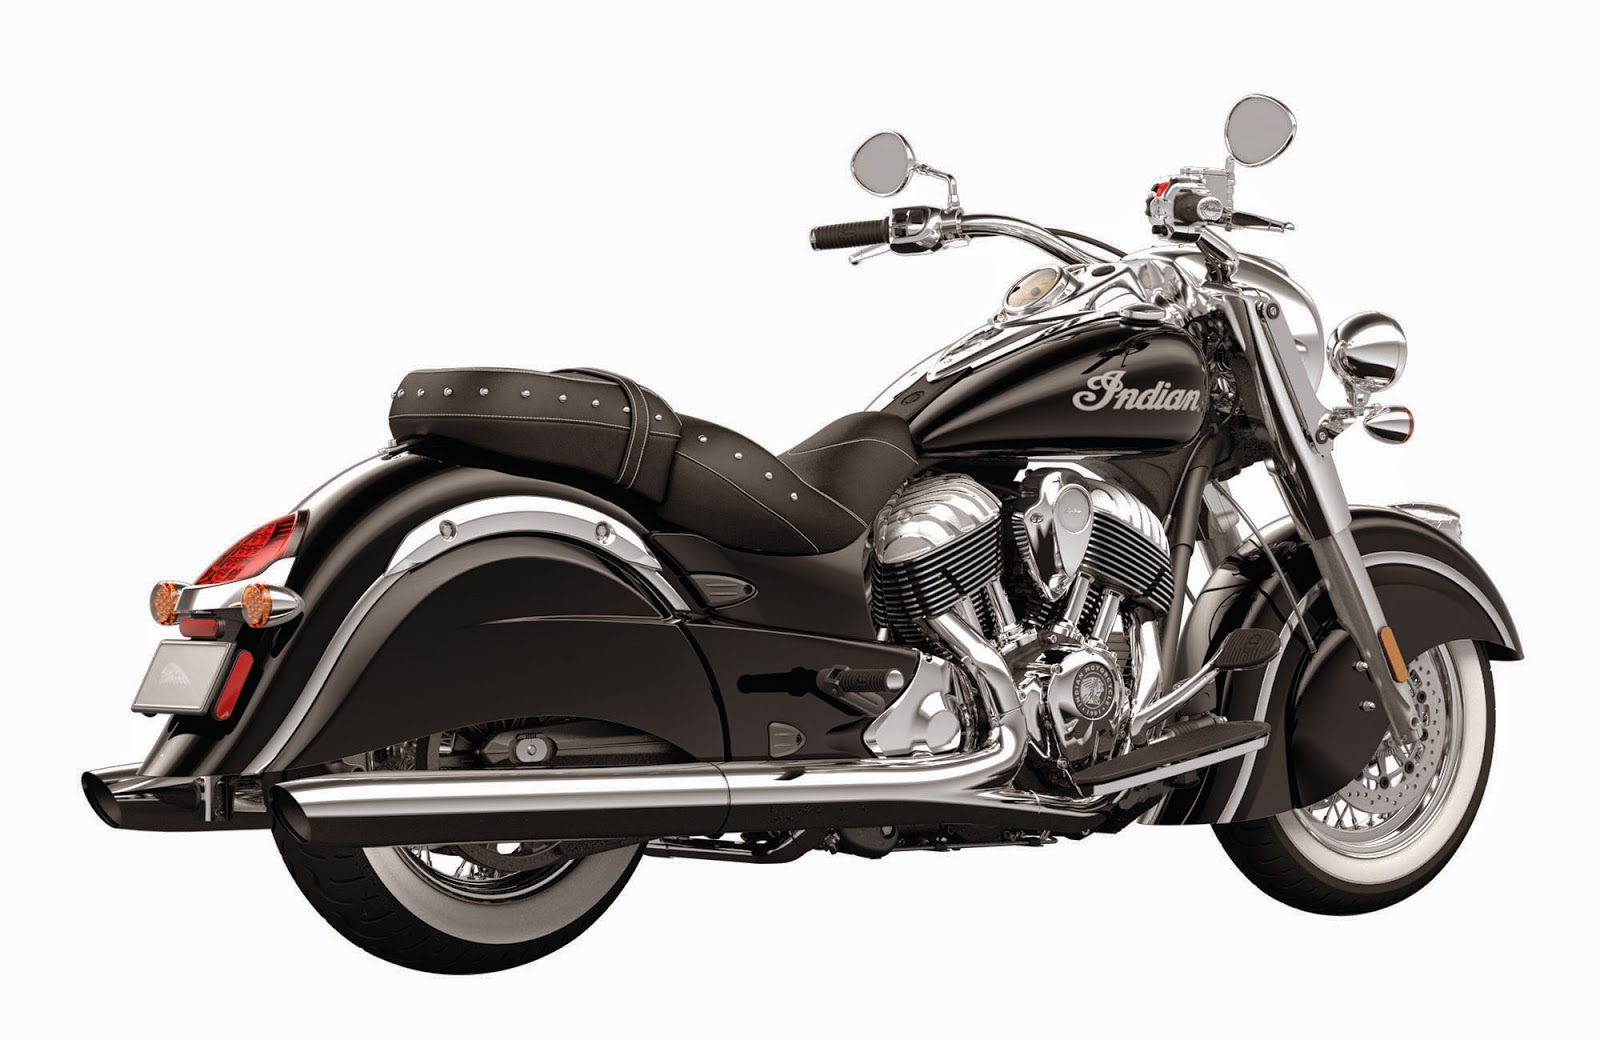 incoming of new indian chief classic 2015 bike car art photos images wallpapers pics photos. Black Bedroom Furniture Sets. Home Design Ideas